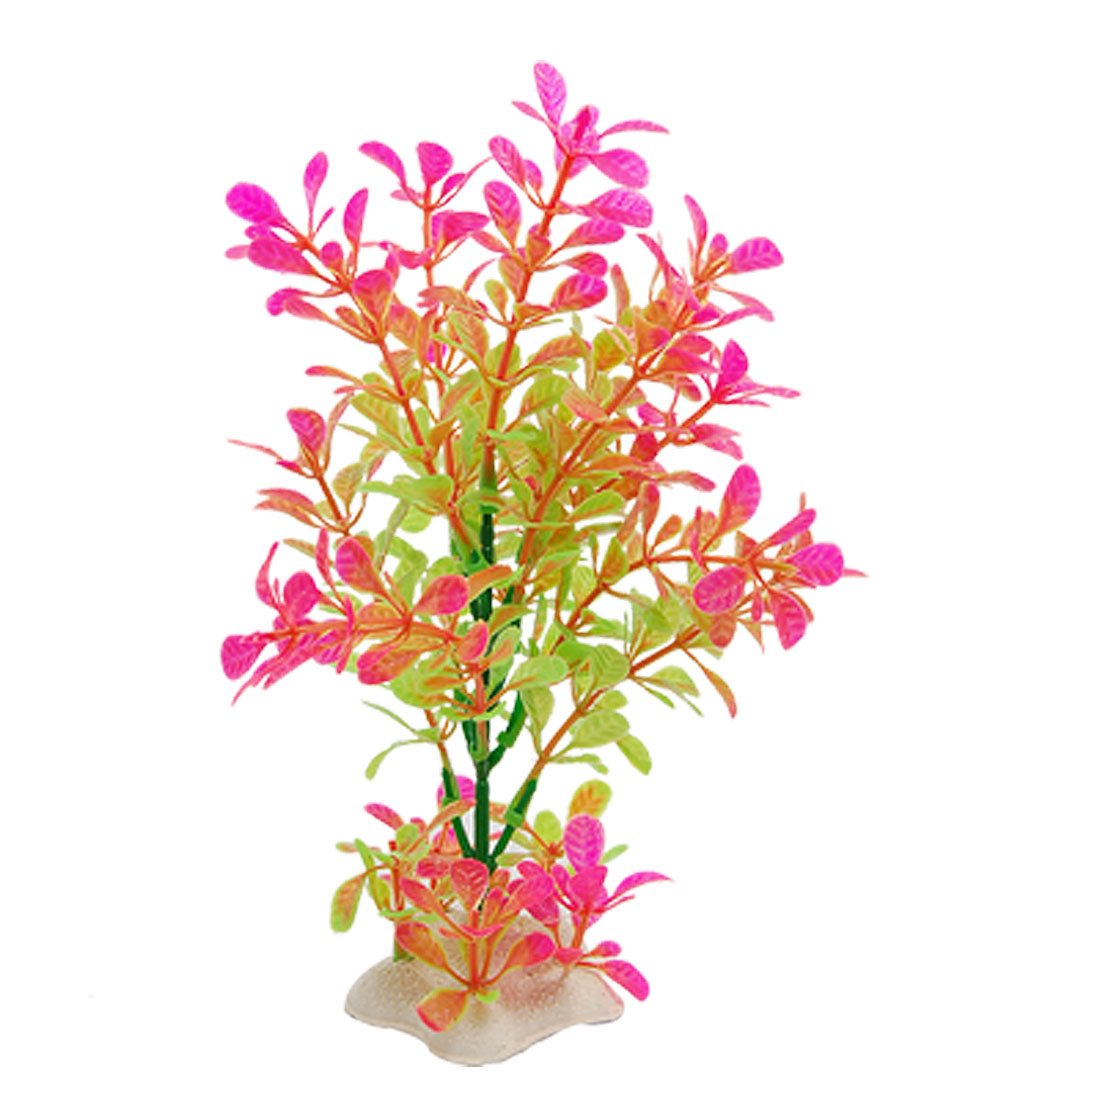 "Fish Tank 7.5"" Height Hot Pink Green Plastic Grass Plants Ornament"